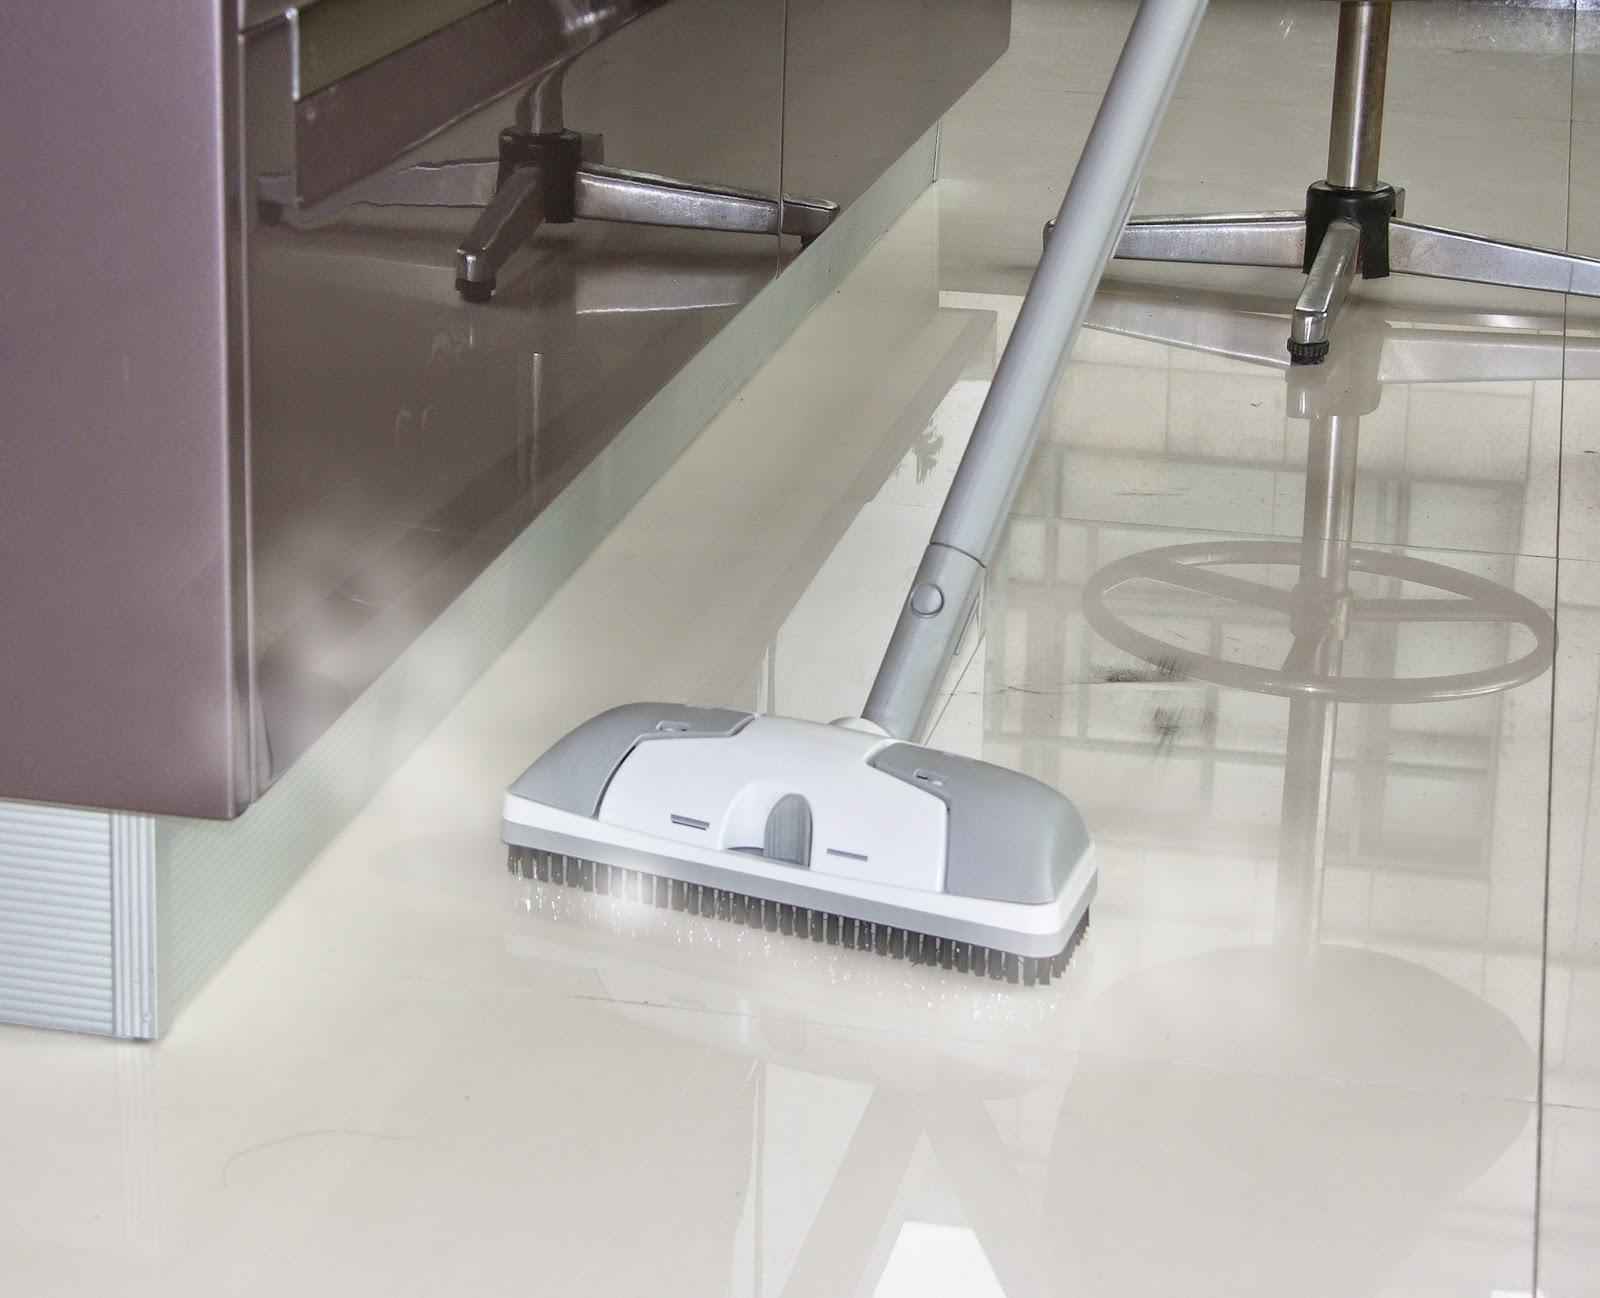 Morck Cleaning Tile Floor Steam Cleaning Machines